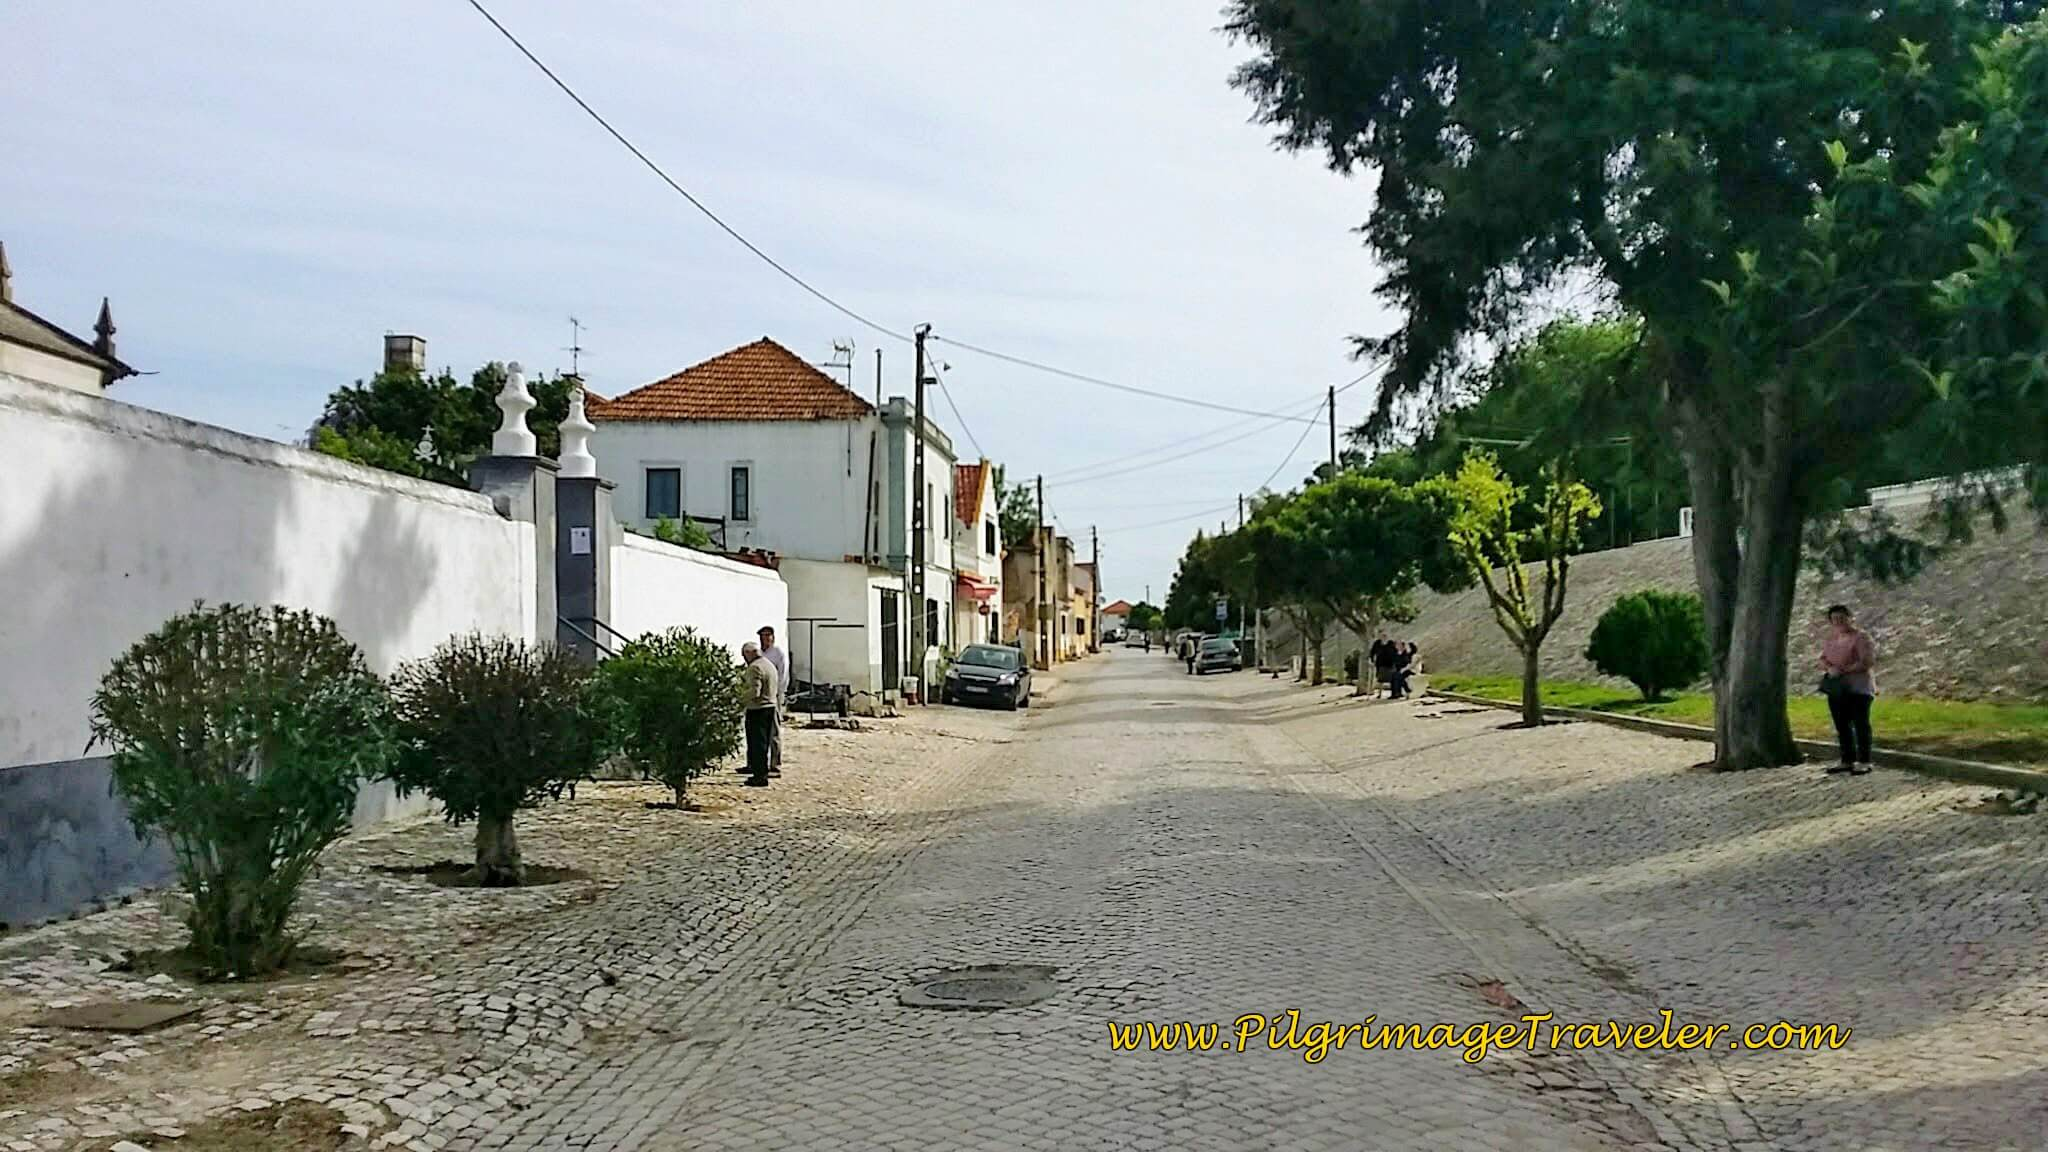 Entering Valada, Portugal on the Portuguese Way